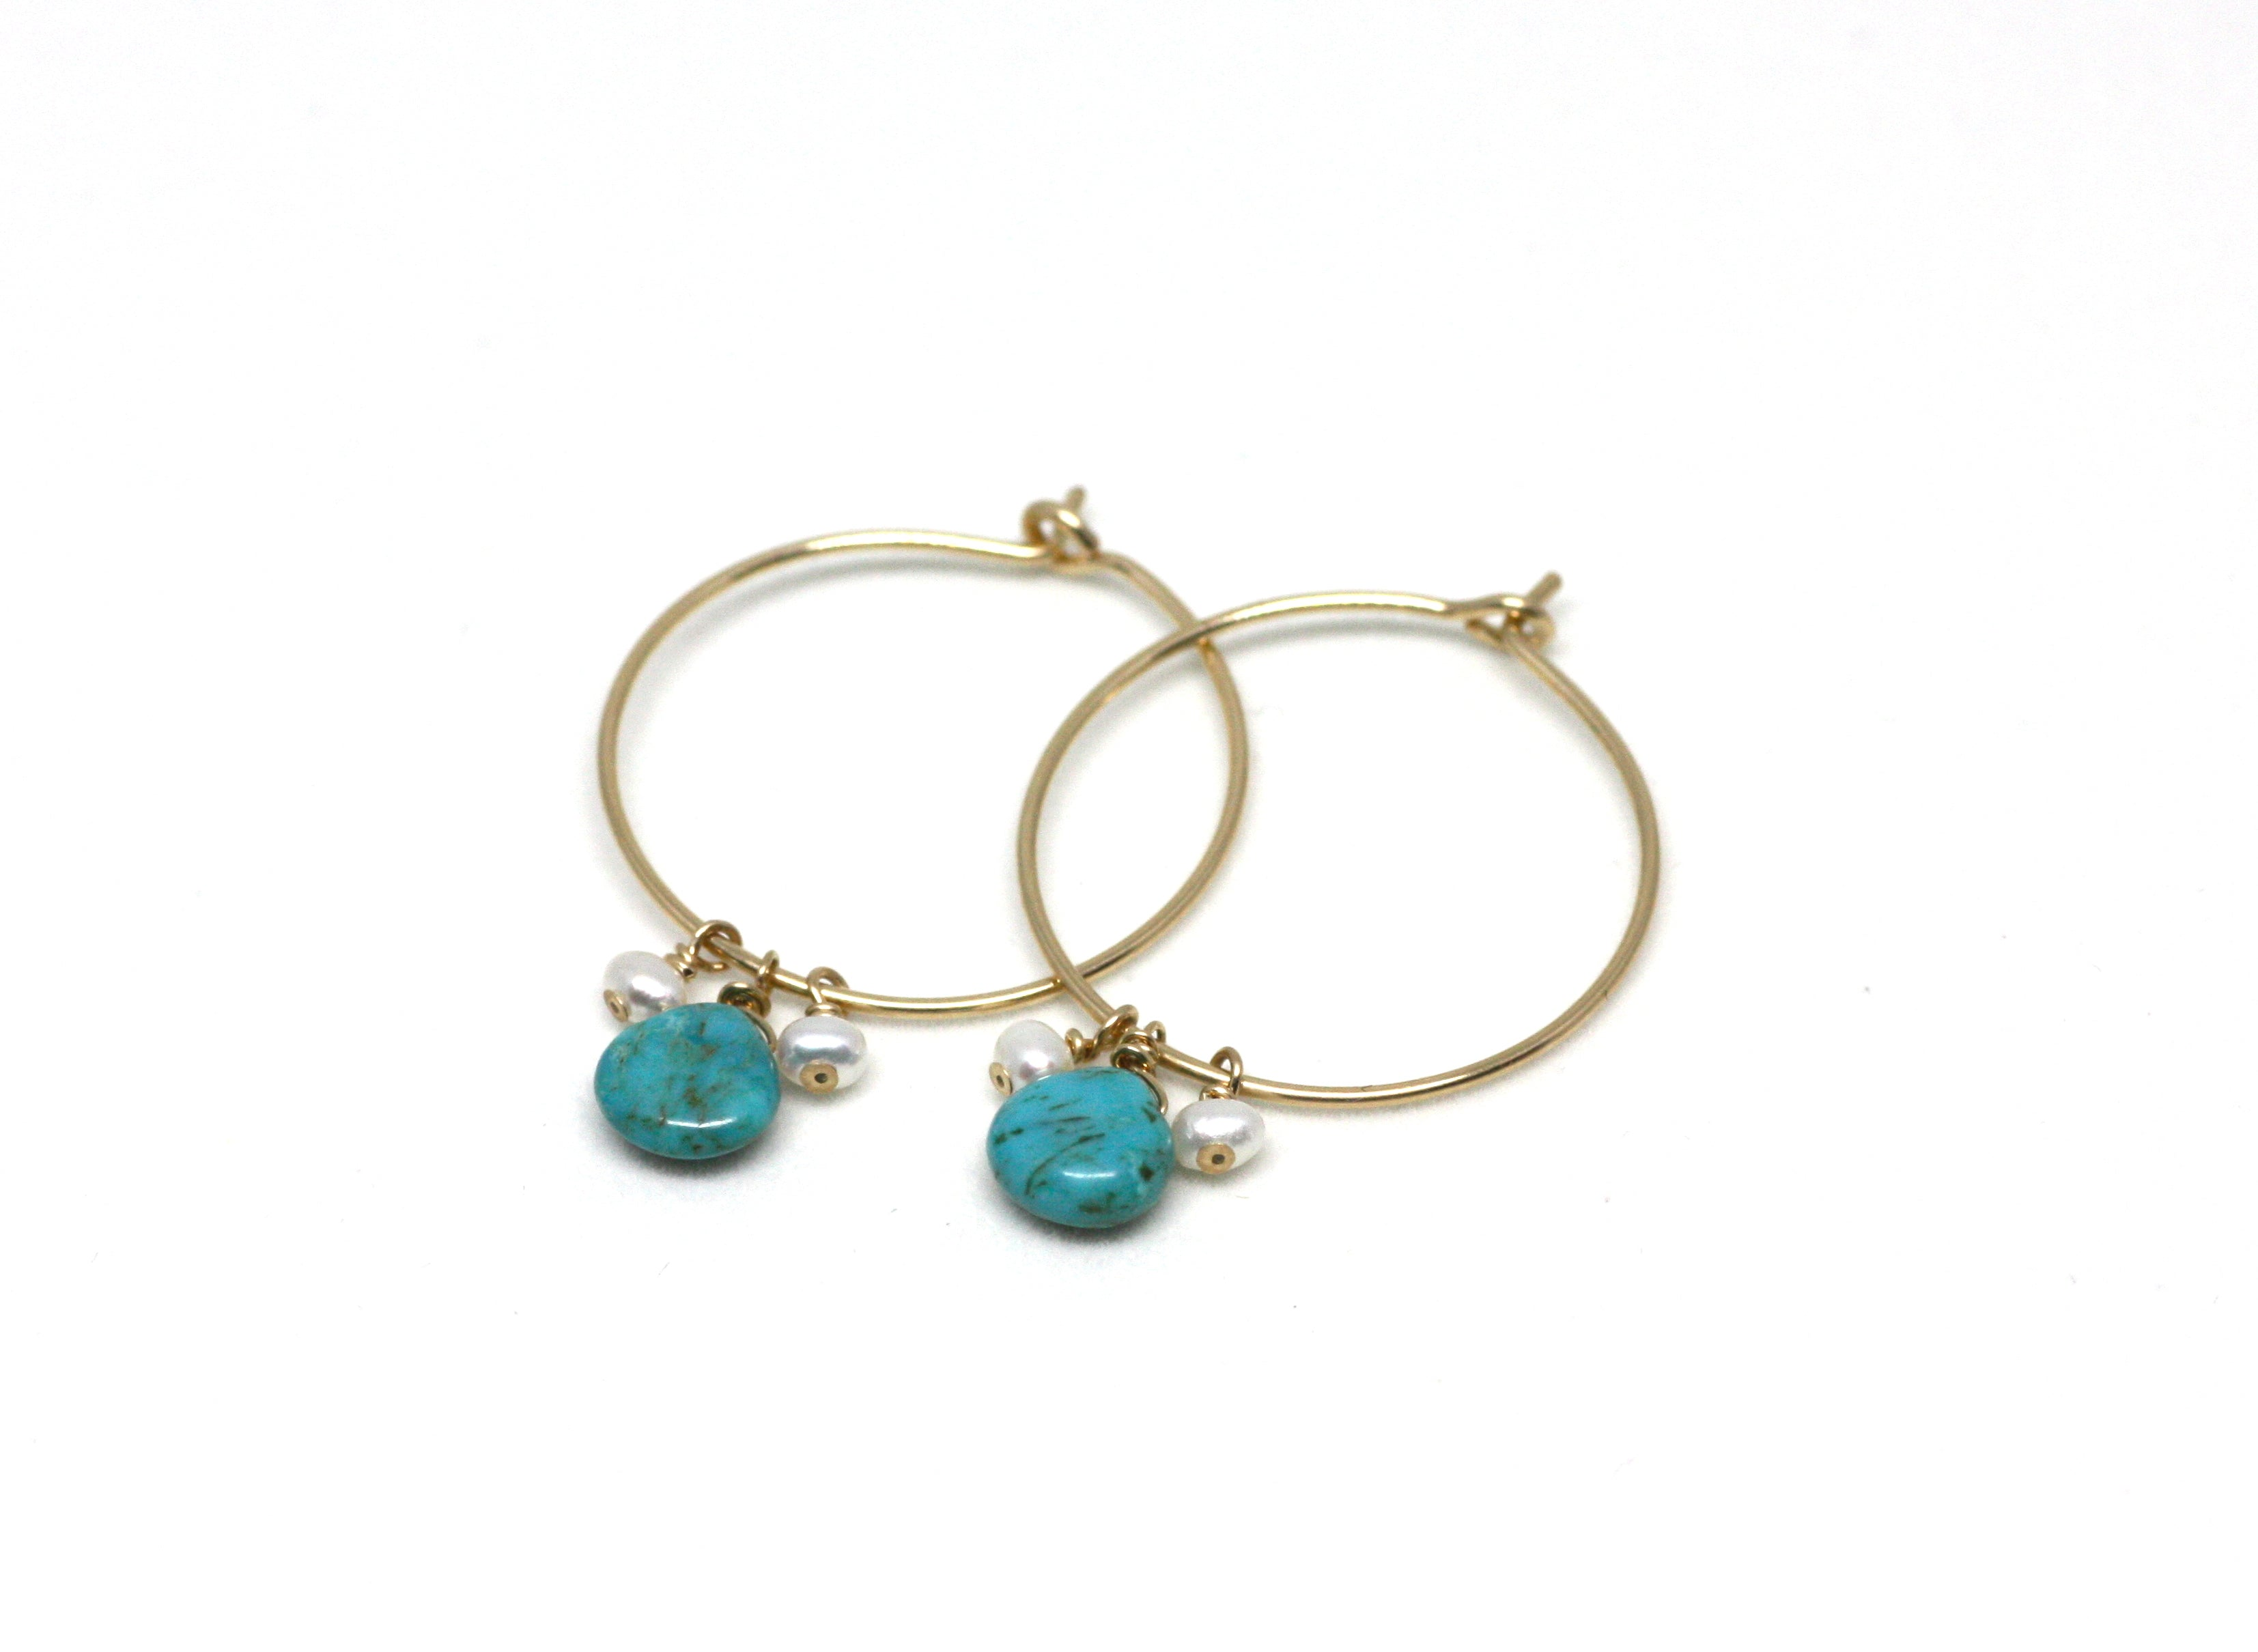 Turquoise and Pearl Hoop Earrings in Gold